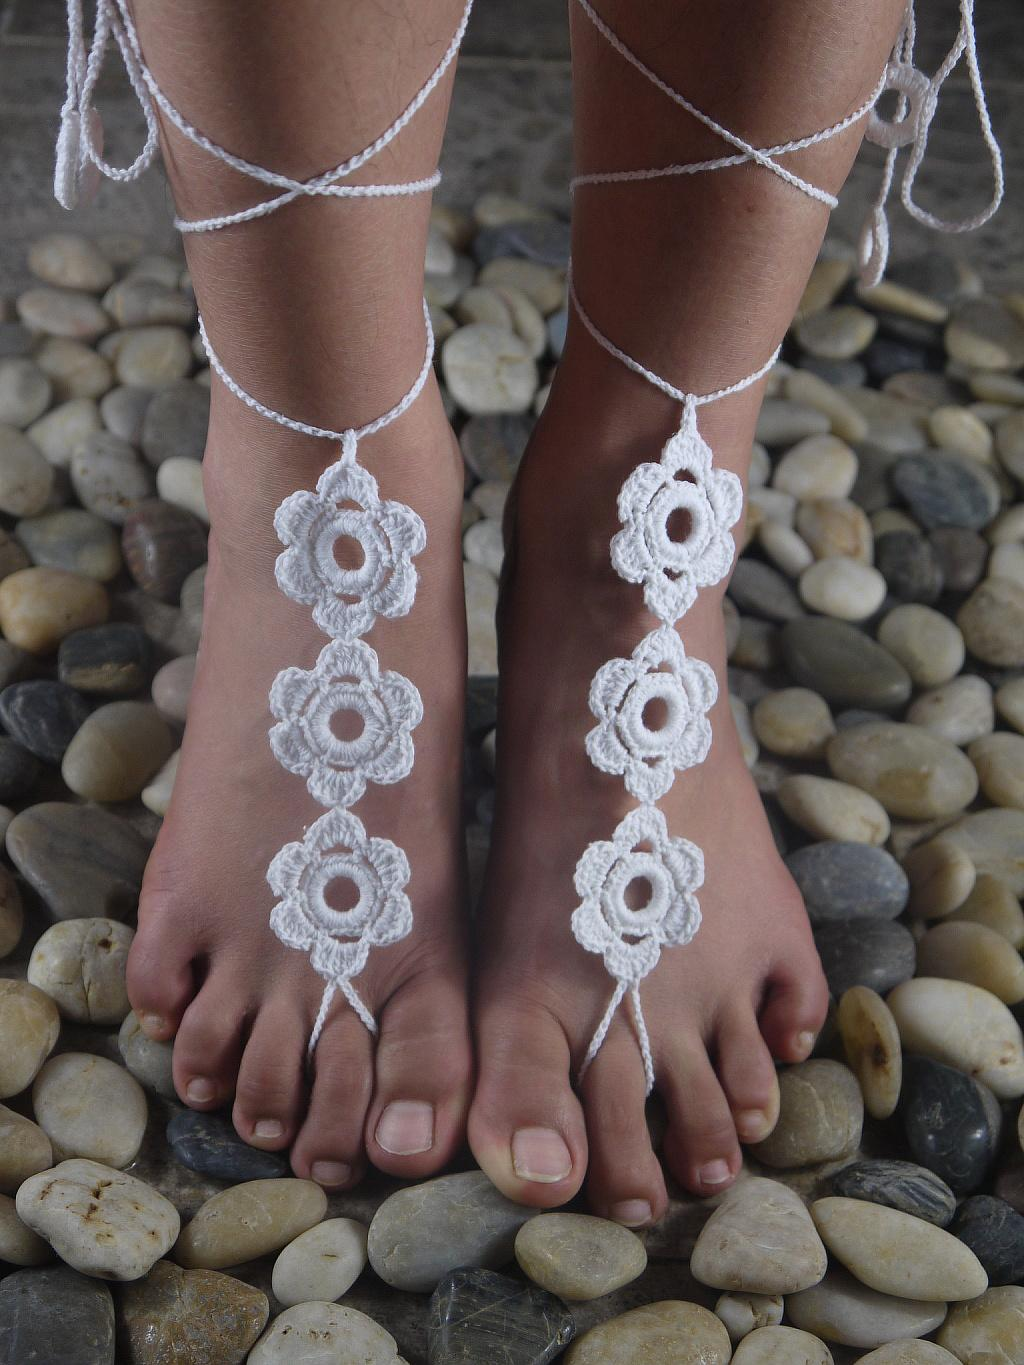 Women Sexy White Shoes,Cotton Crocheted Barefoot Sandals Wedding Applique Shoes, Gypsy Bridal Foo..